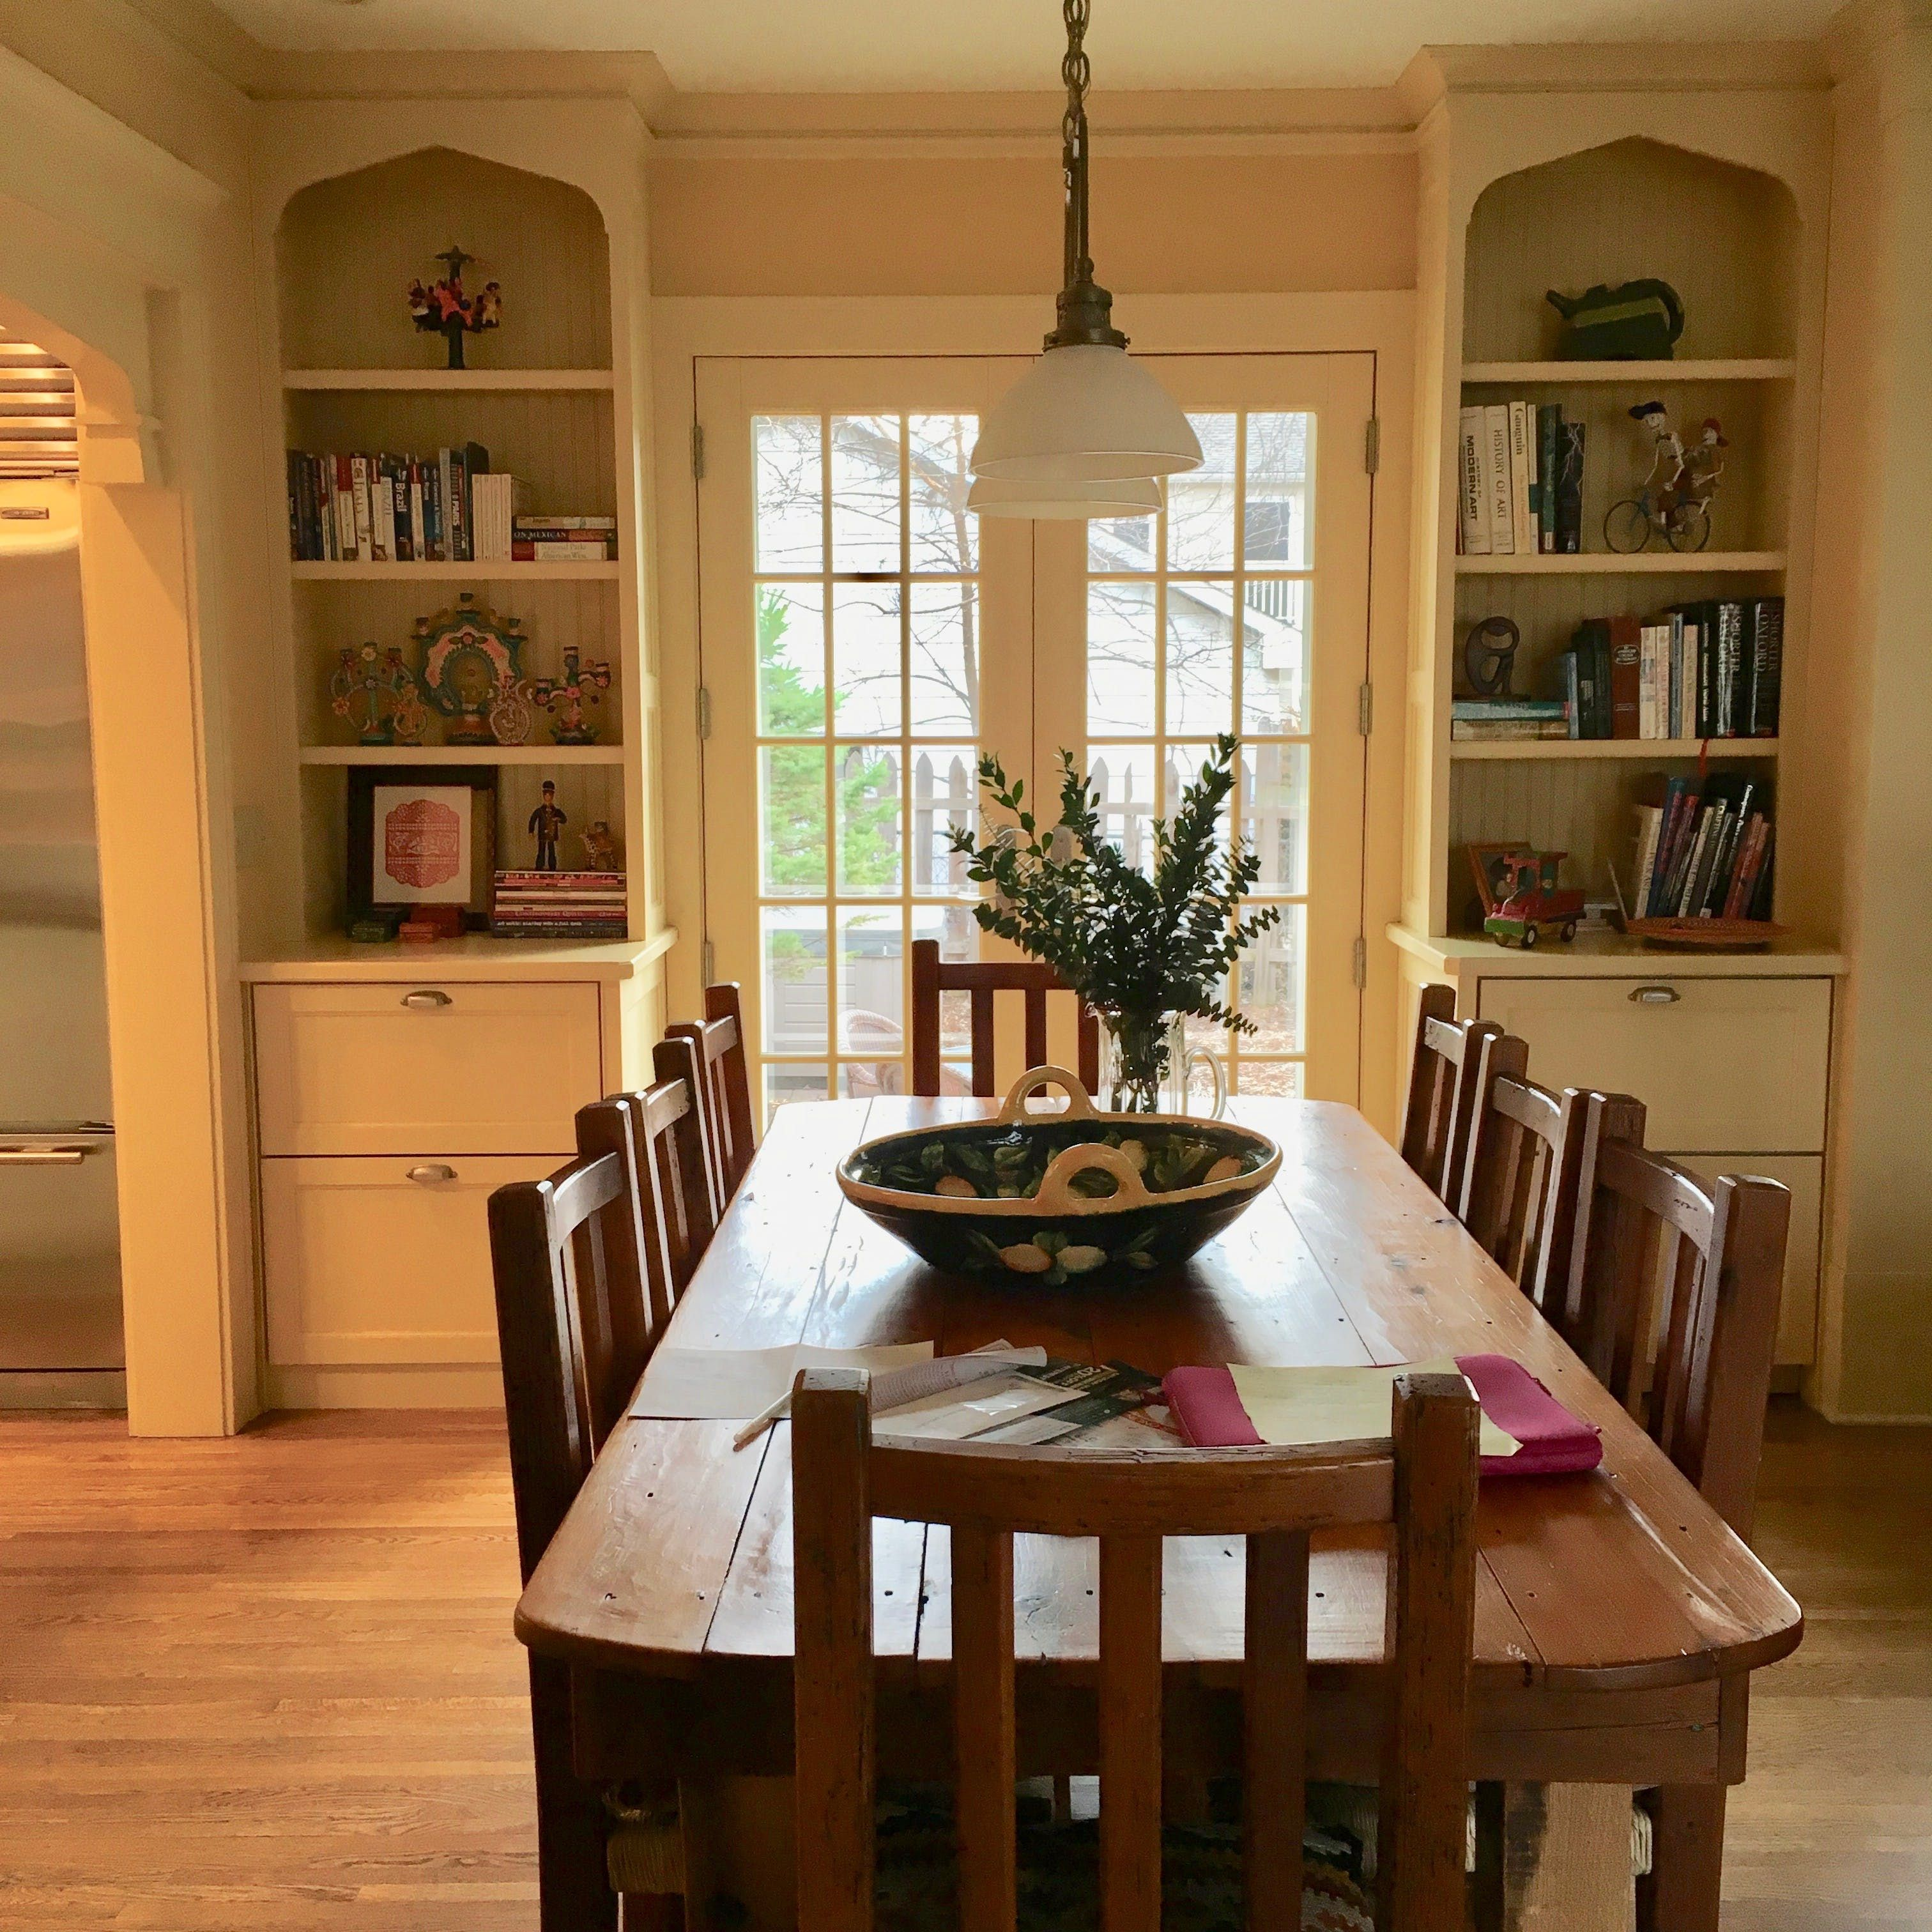 30 Years In A 100-Year-Old Home